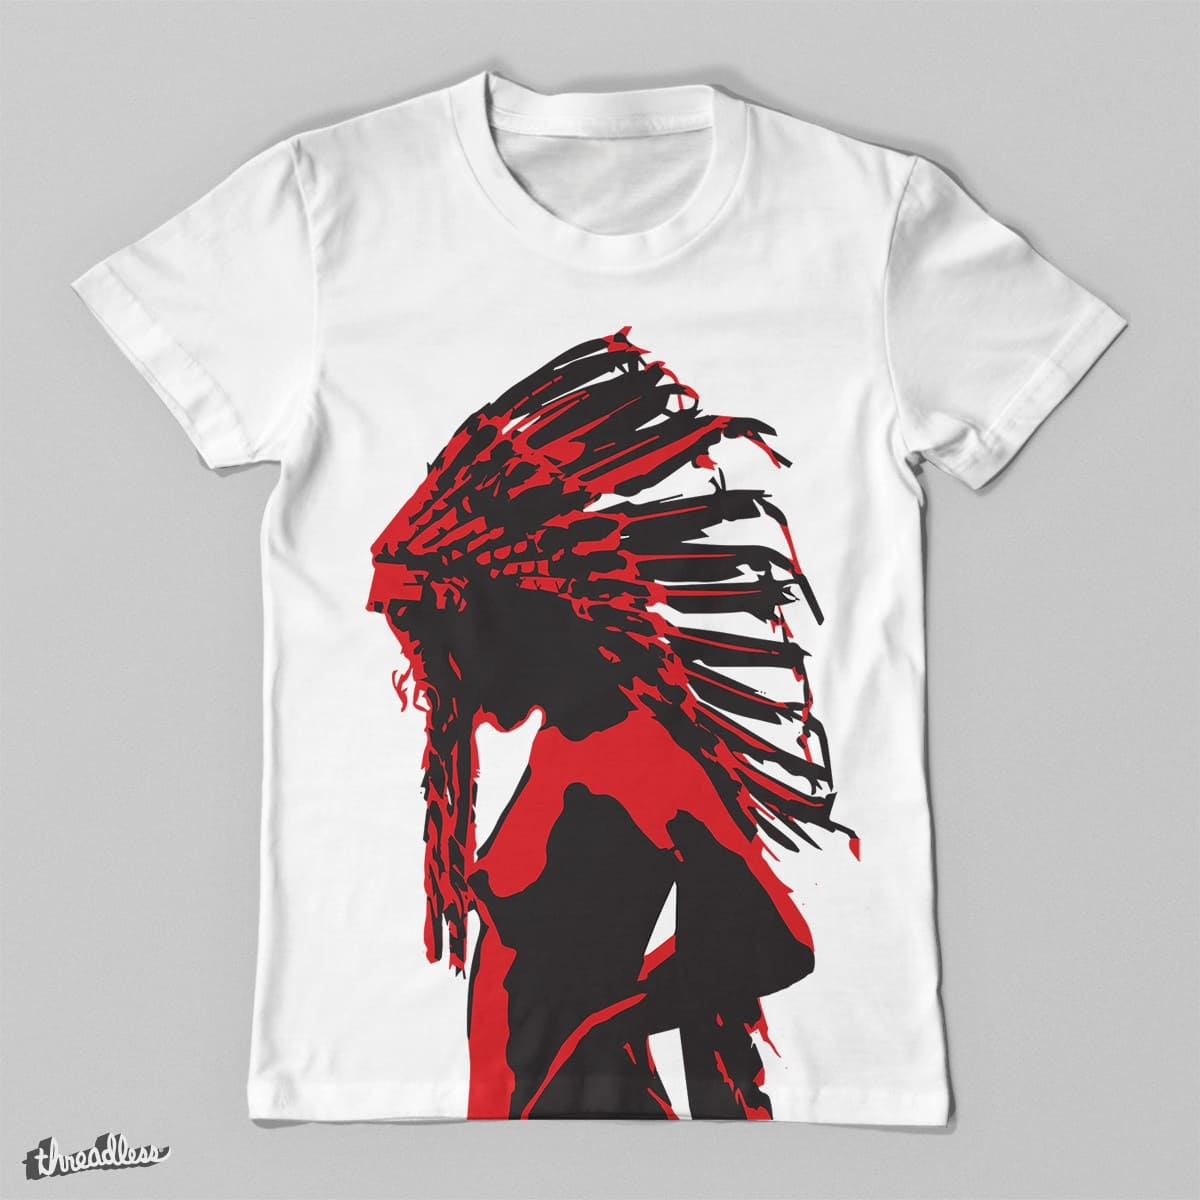 Native by danaoodana on Threadless